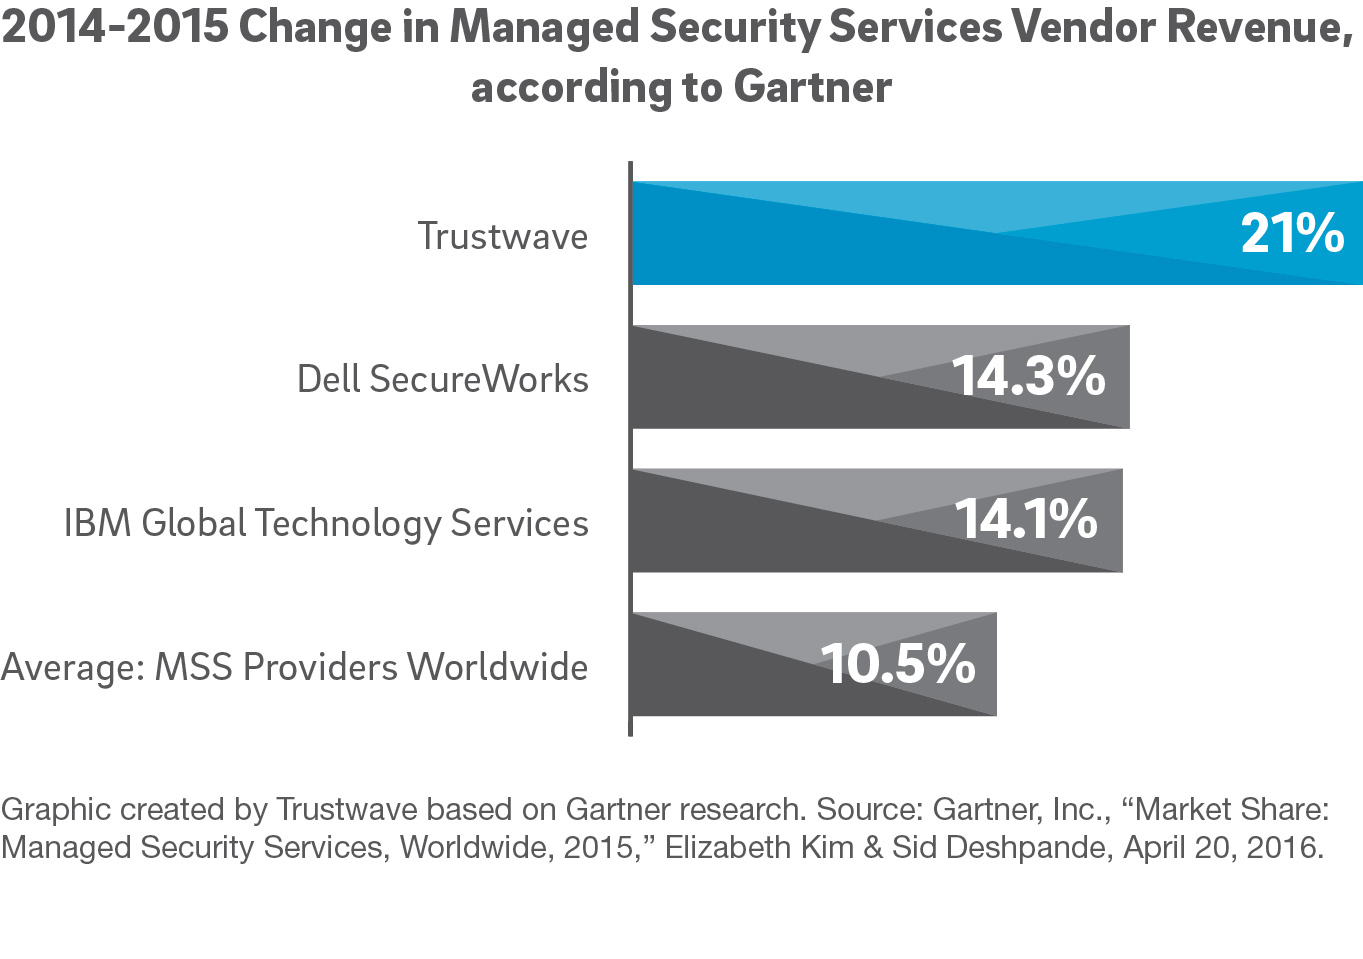 Trustwave: the Fastest-Growing Global Managed Security